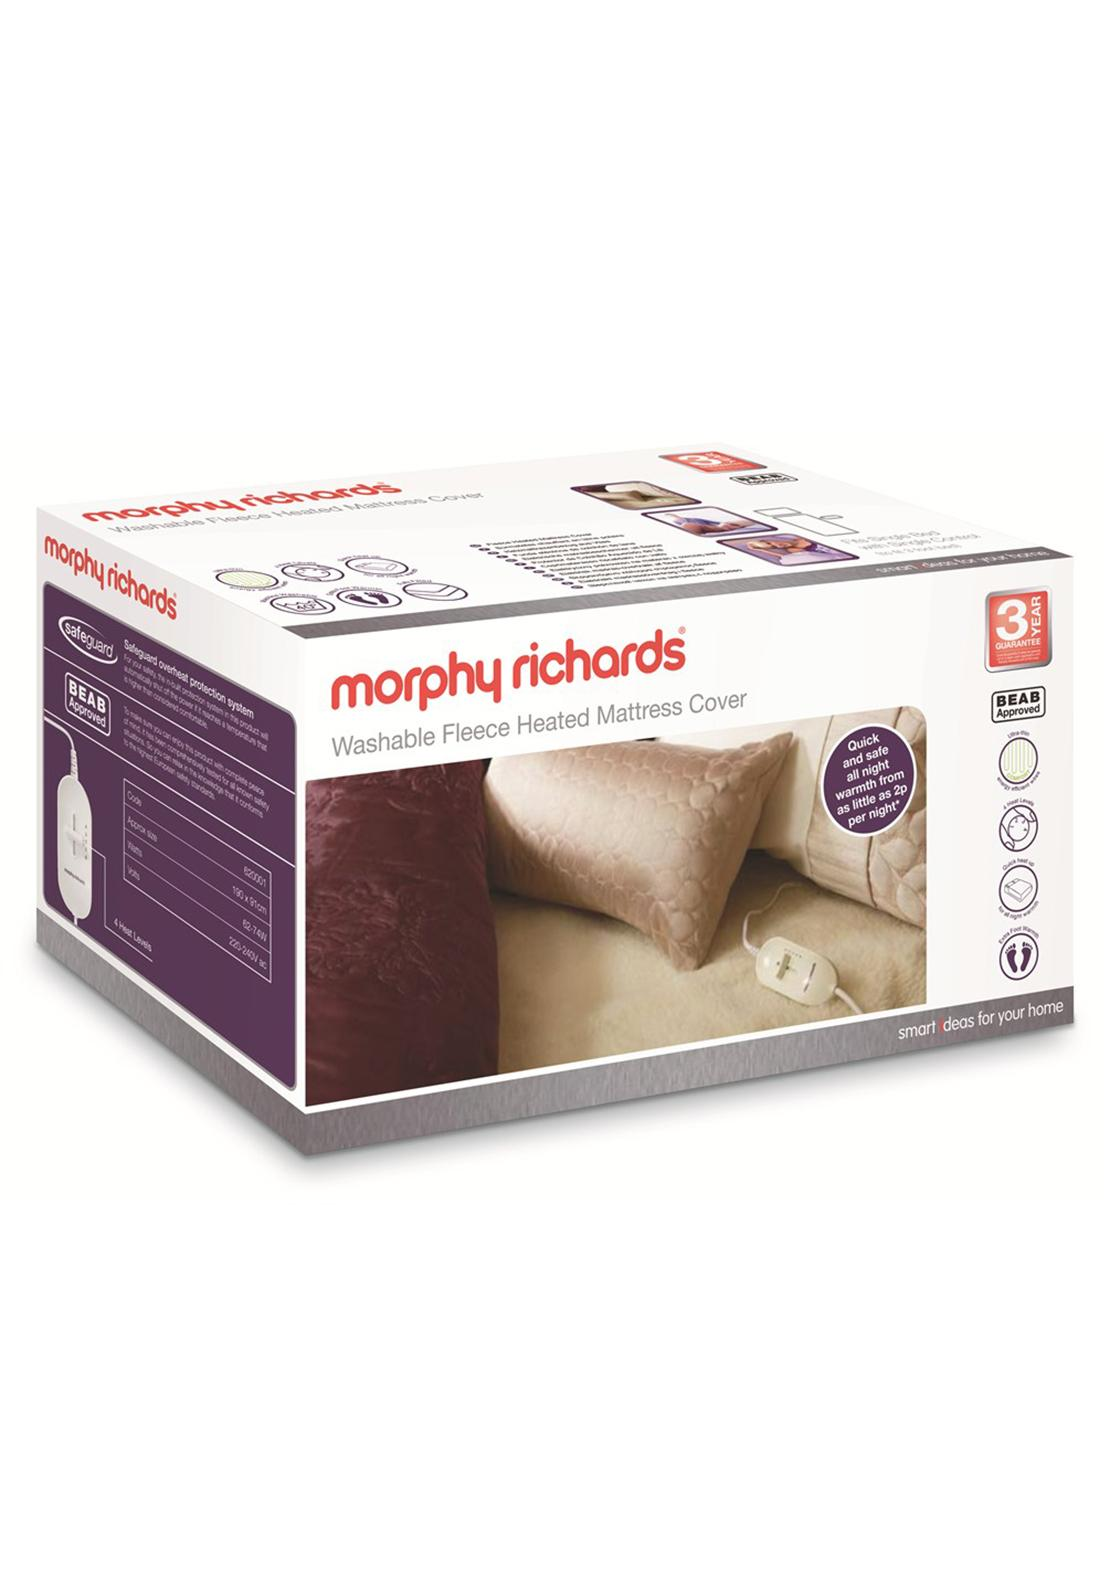 Morphy Richards Washable Fleece Heated Mattress Cover, Single